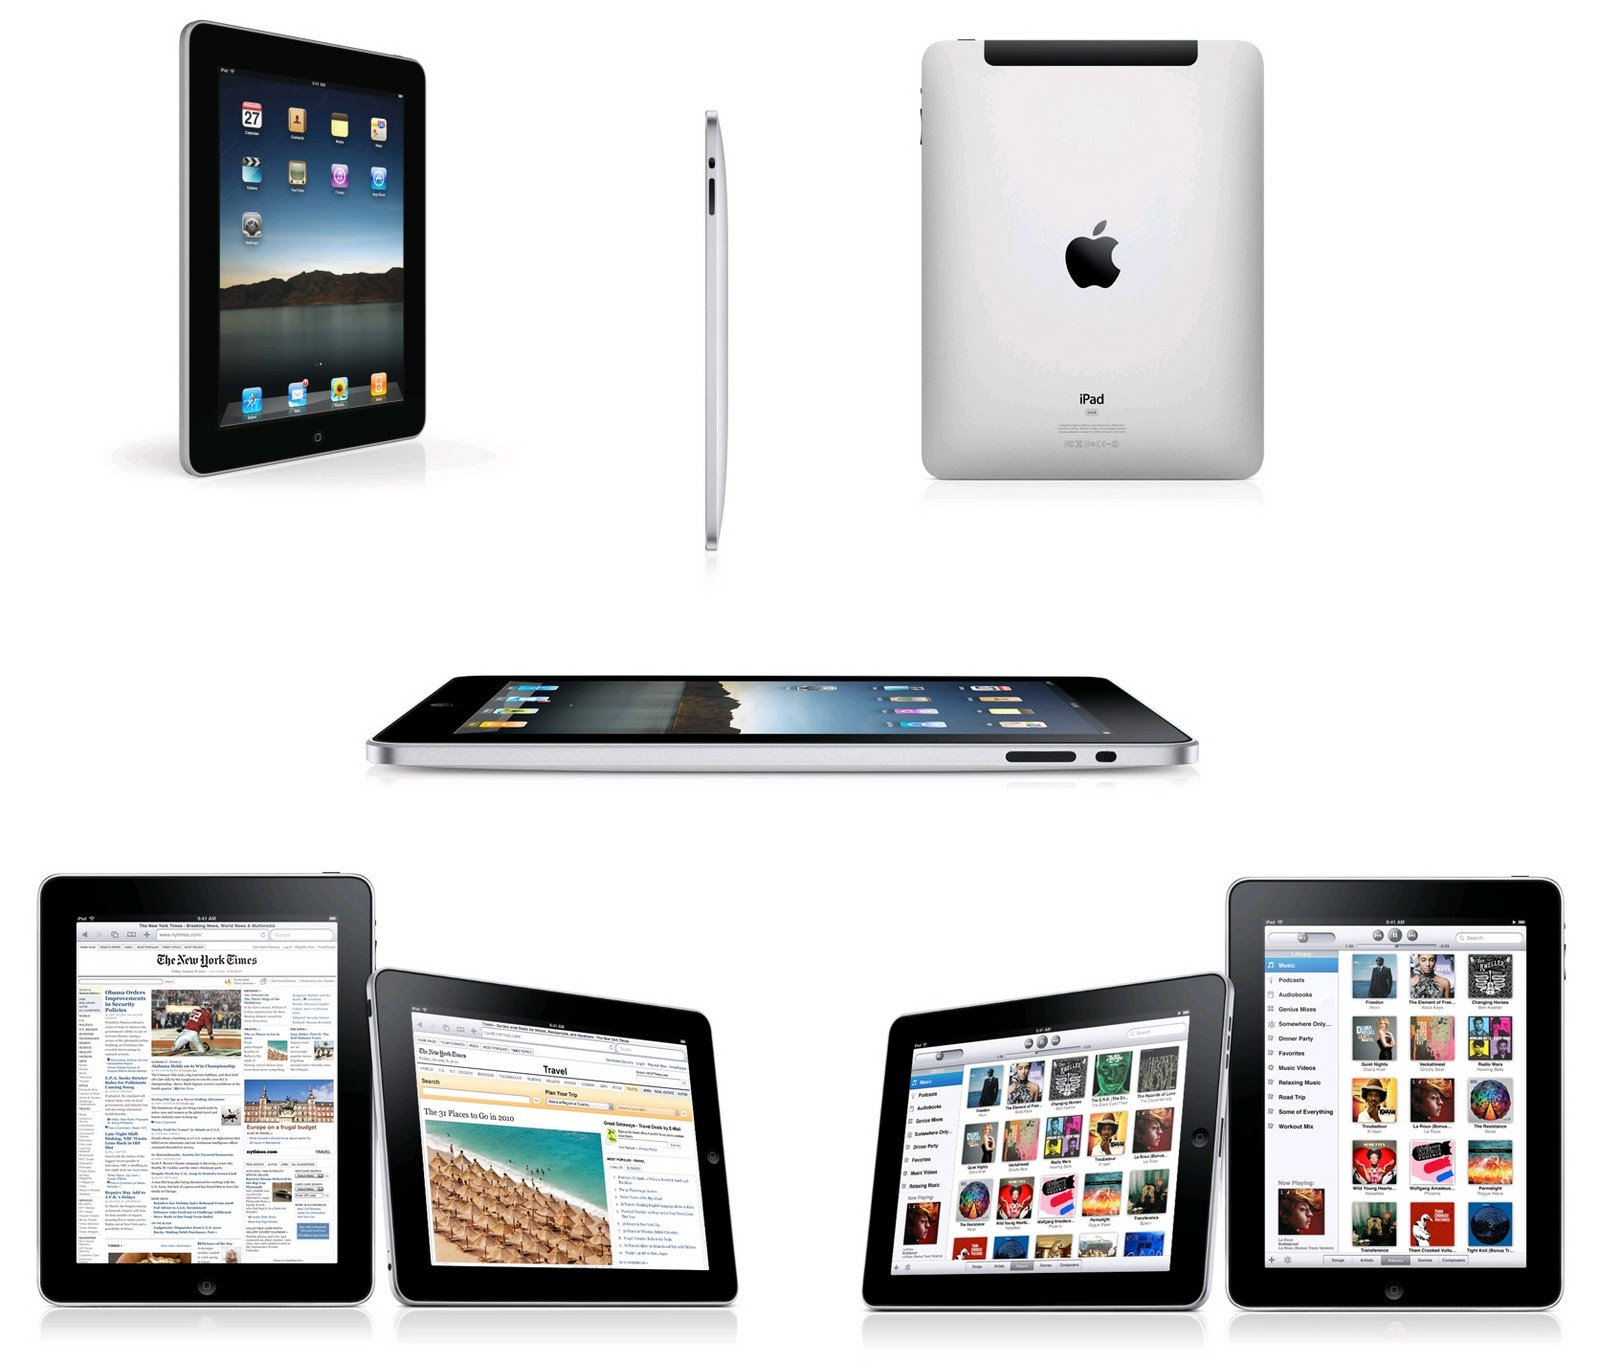 Ipad+3g+64gb+price+in+india